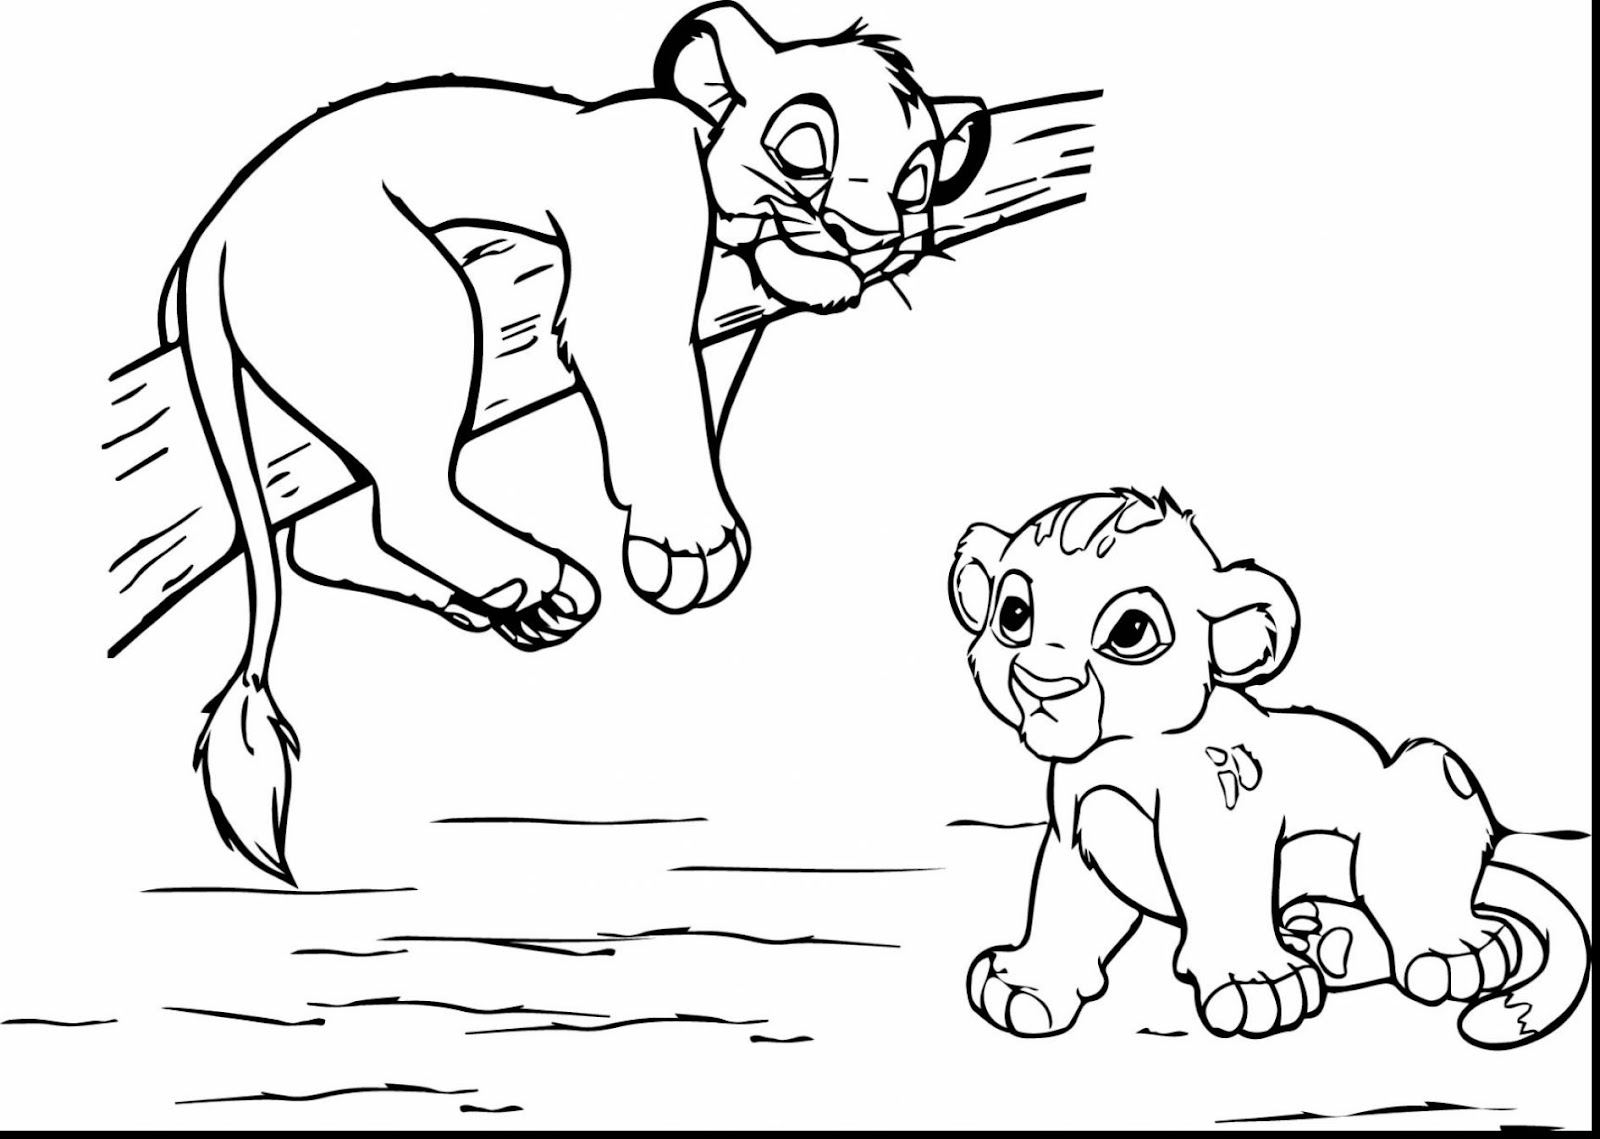 Free coloring pages lion king - Best Free Lion King Scar Coloring Pages Design Coloring Pages